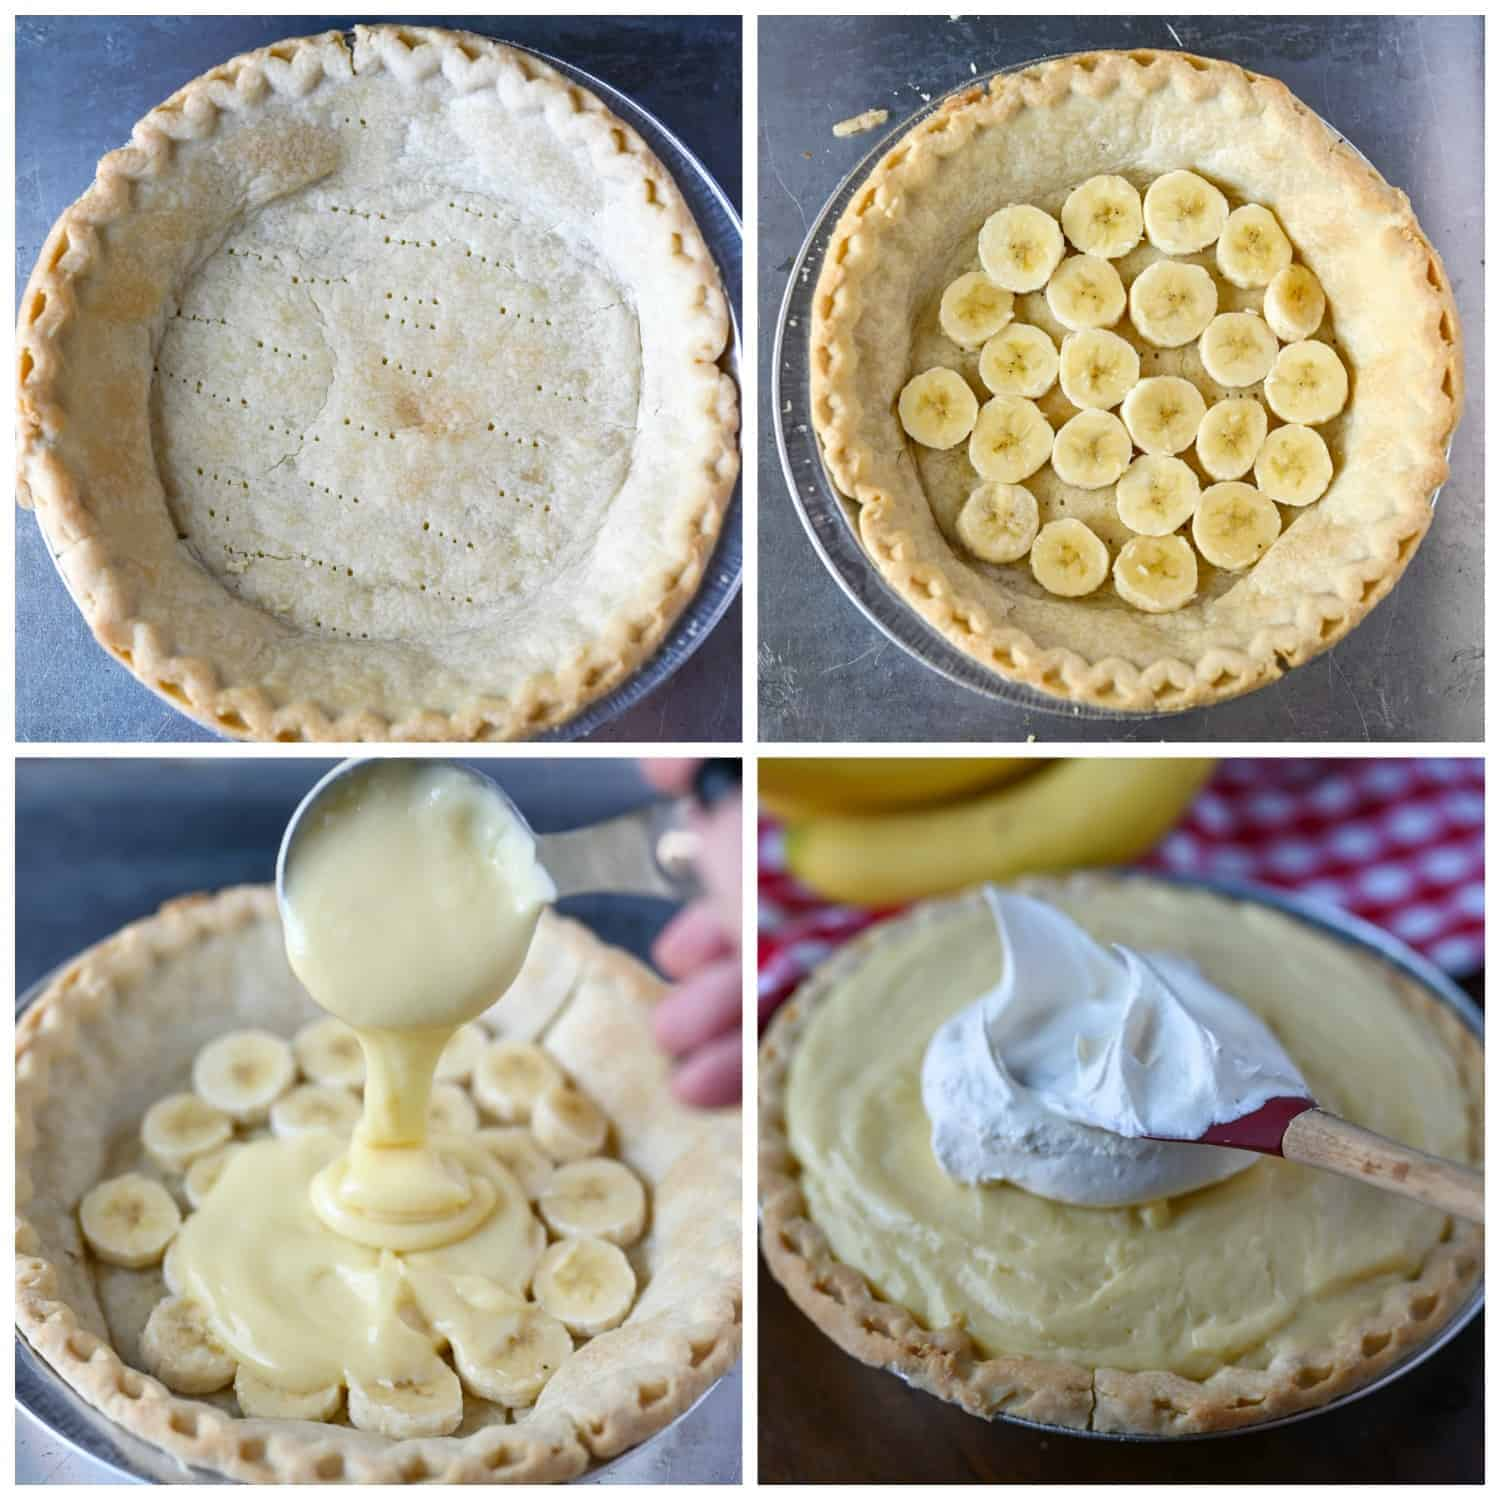 Four process shots, baked pre-made pie crust. Second shot, sliced bana layer on top of baked crust. Third shot, custard being poured on top of banan layer. Fourth shot, whipped cream being spread on top.